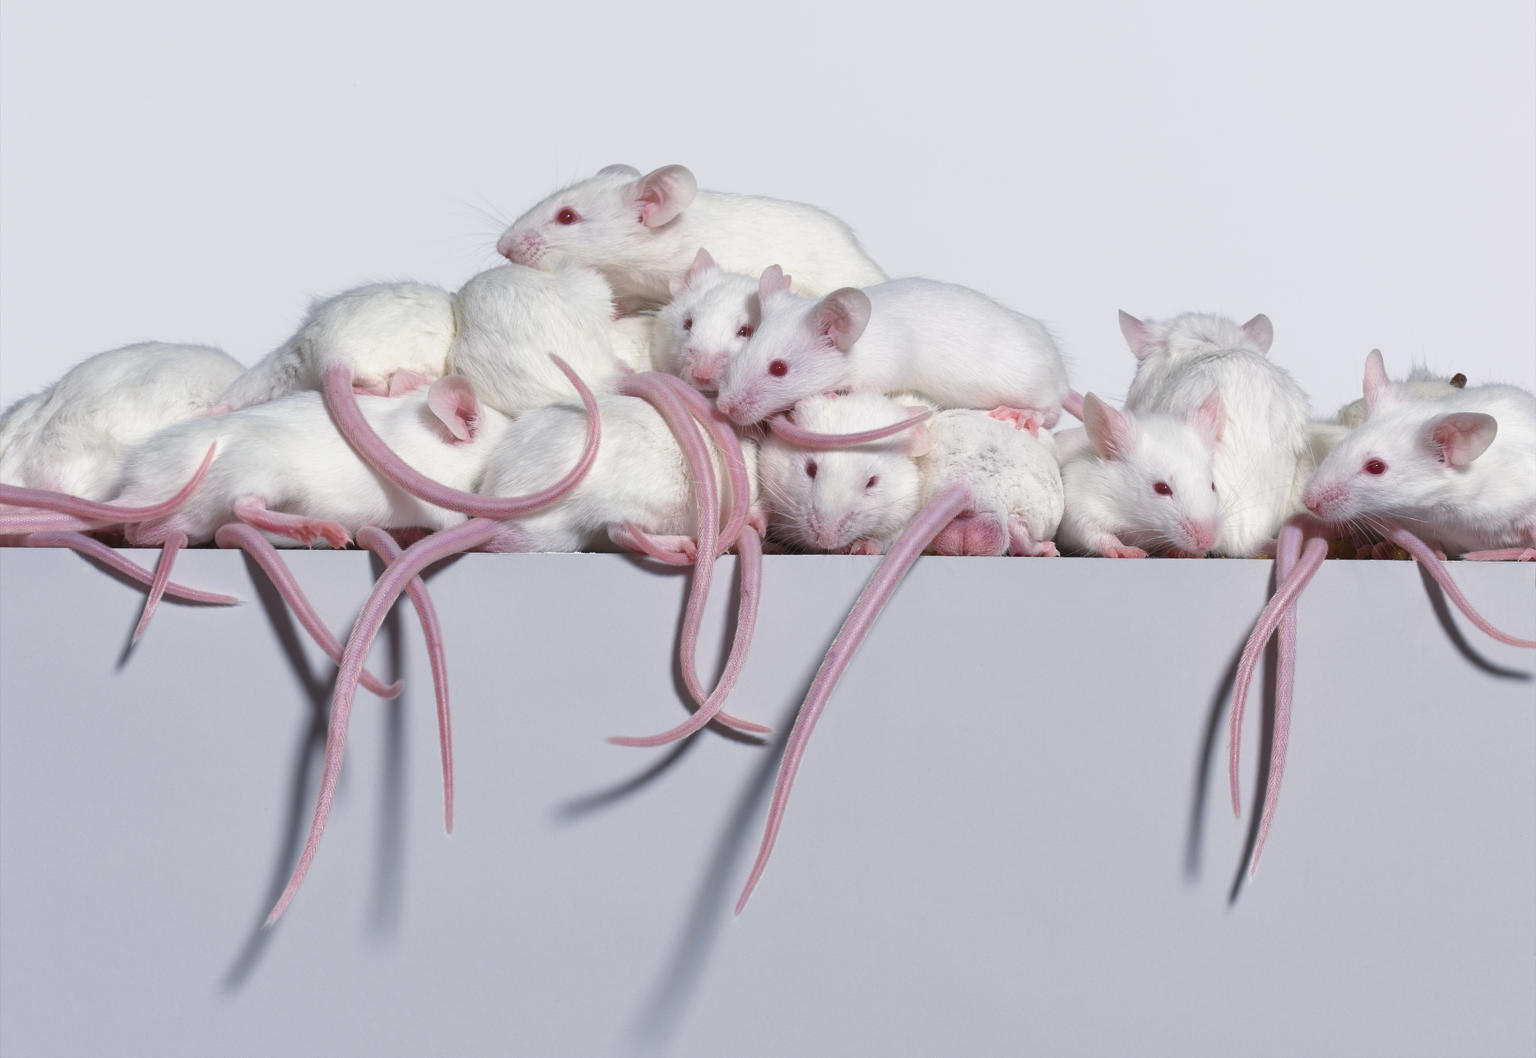 04_6_0_Mice_146_3T.png